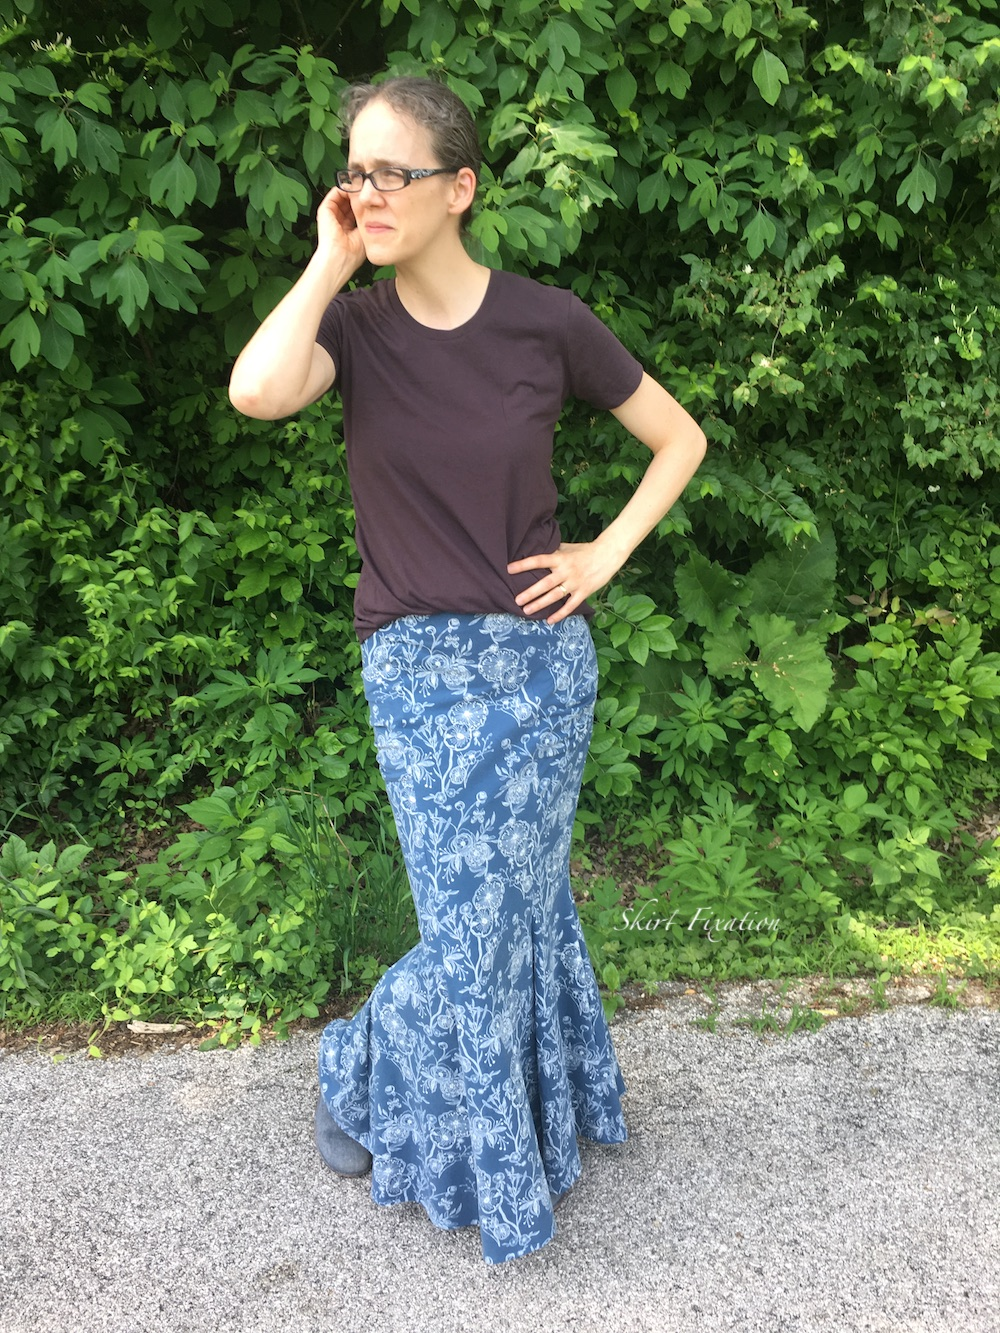 Mermaid Maxi Skirt pattern sewed and reviewed by Skirt Fixation